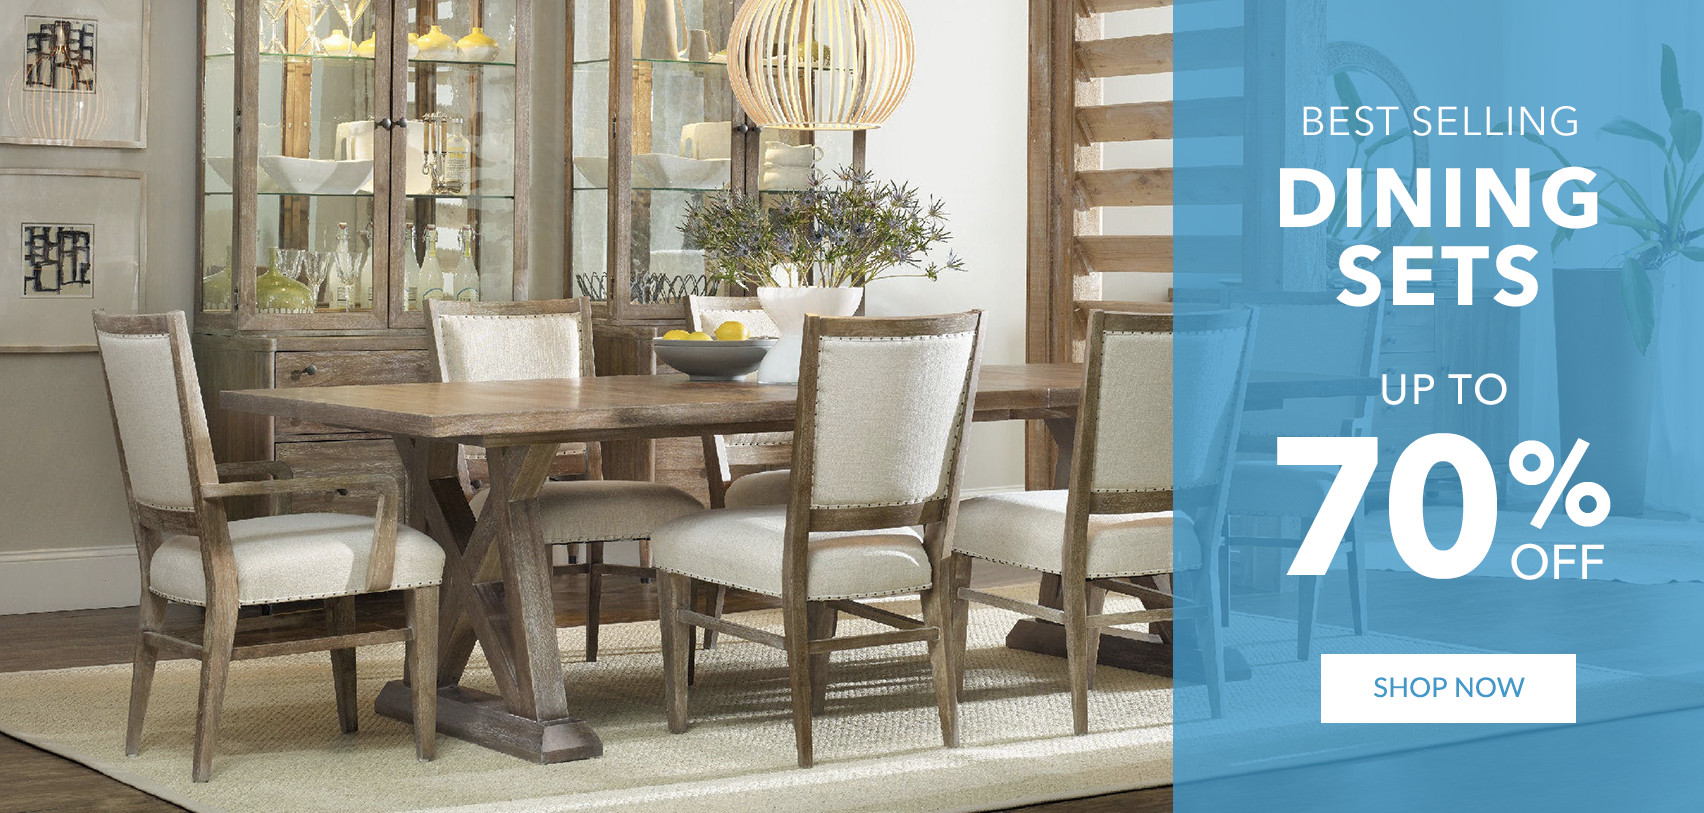 kitchen dining PC teal kitchen chairs Related Categories